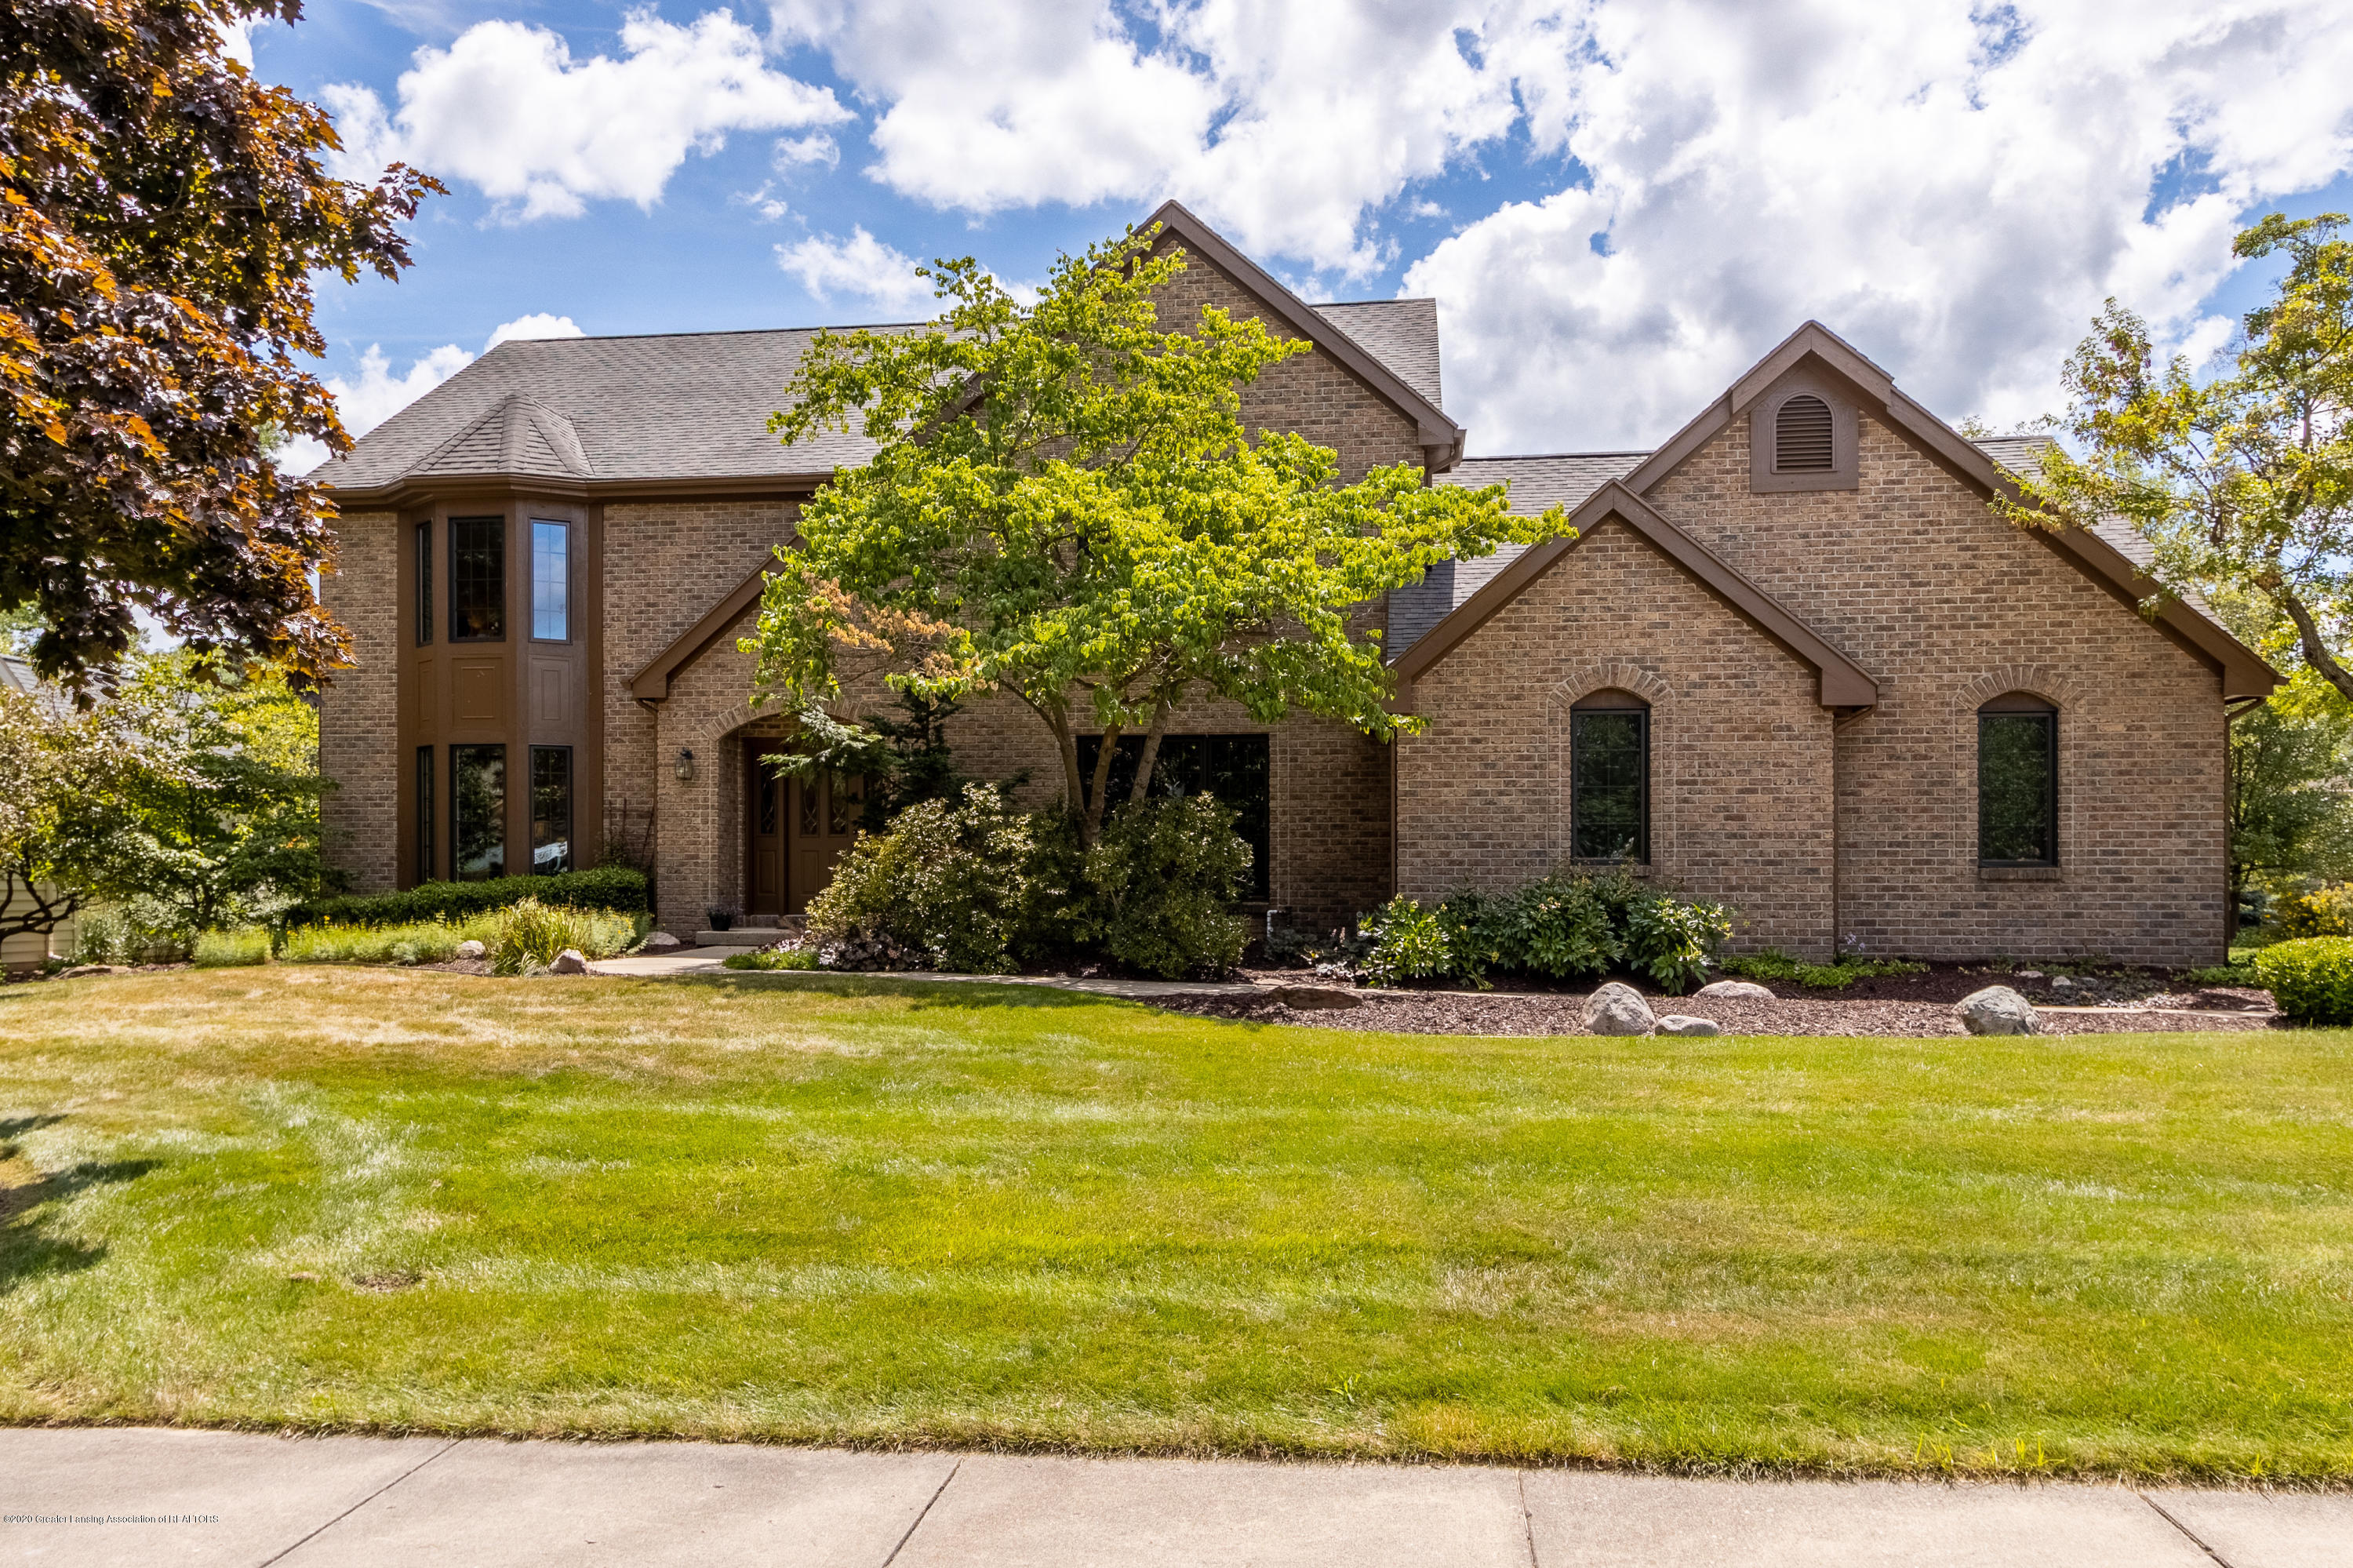 3892 Crooked Creek Rd - 3892 Crooked Creek Drive - 1